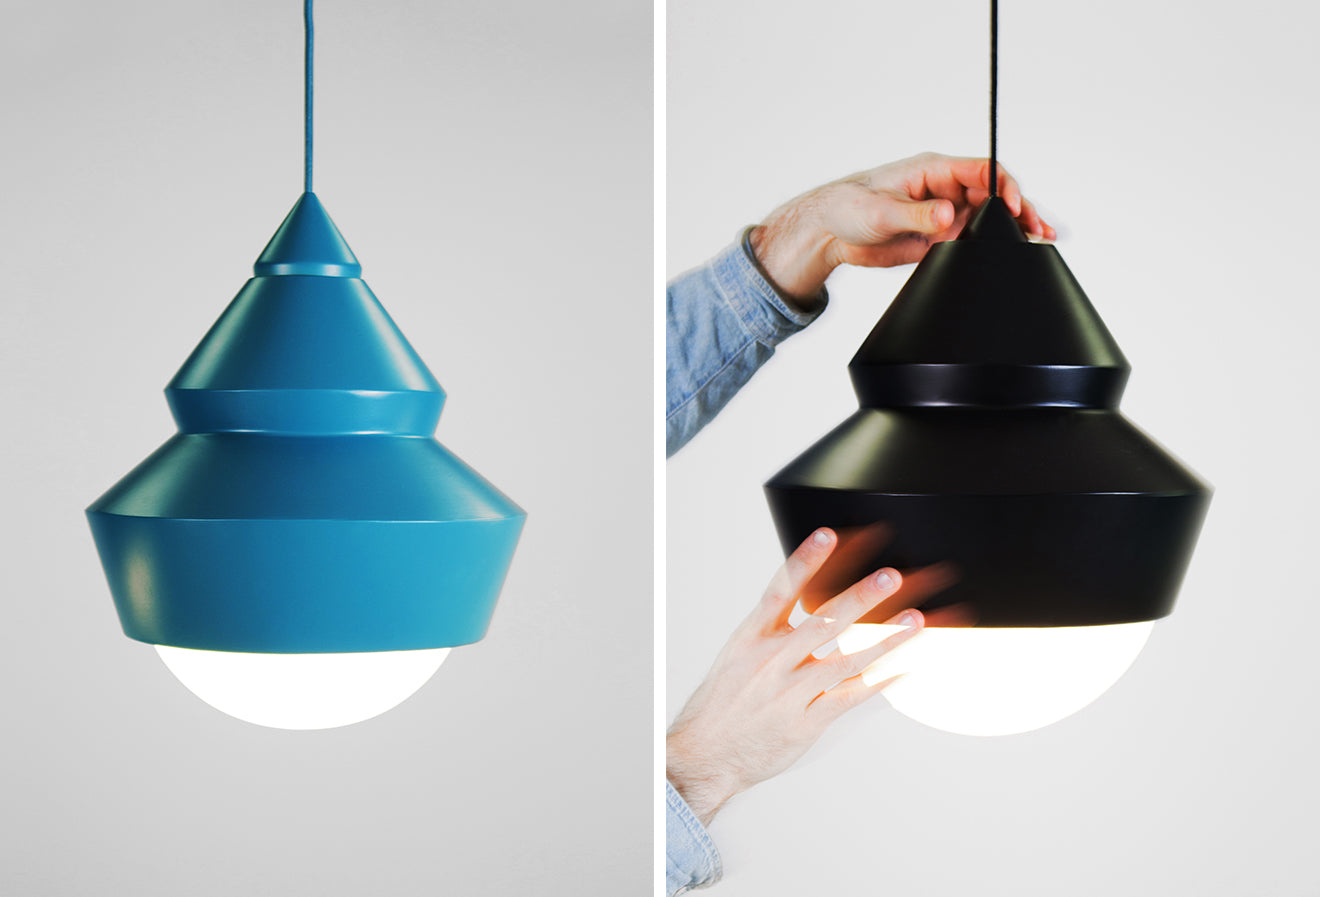 Solstice adjustable ceiling pendant from Markus Johansson